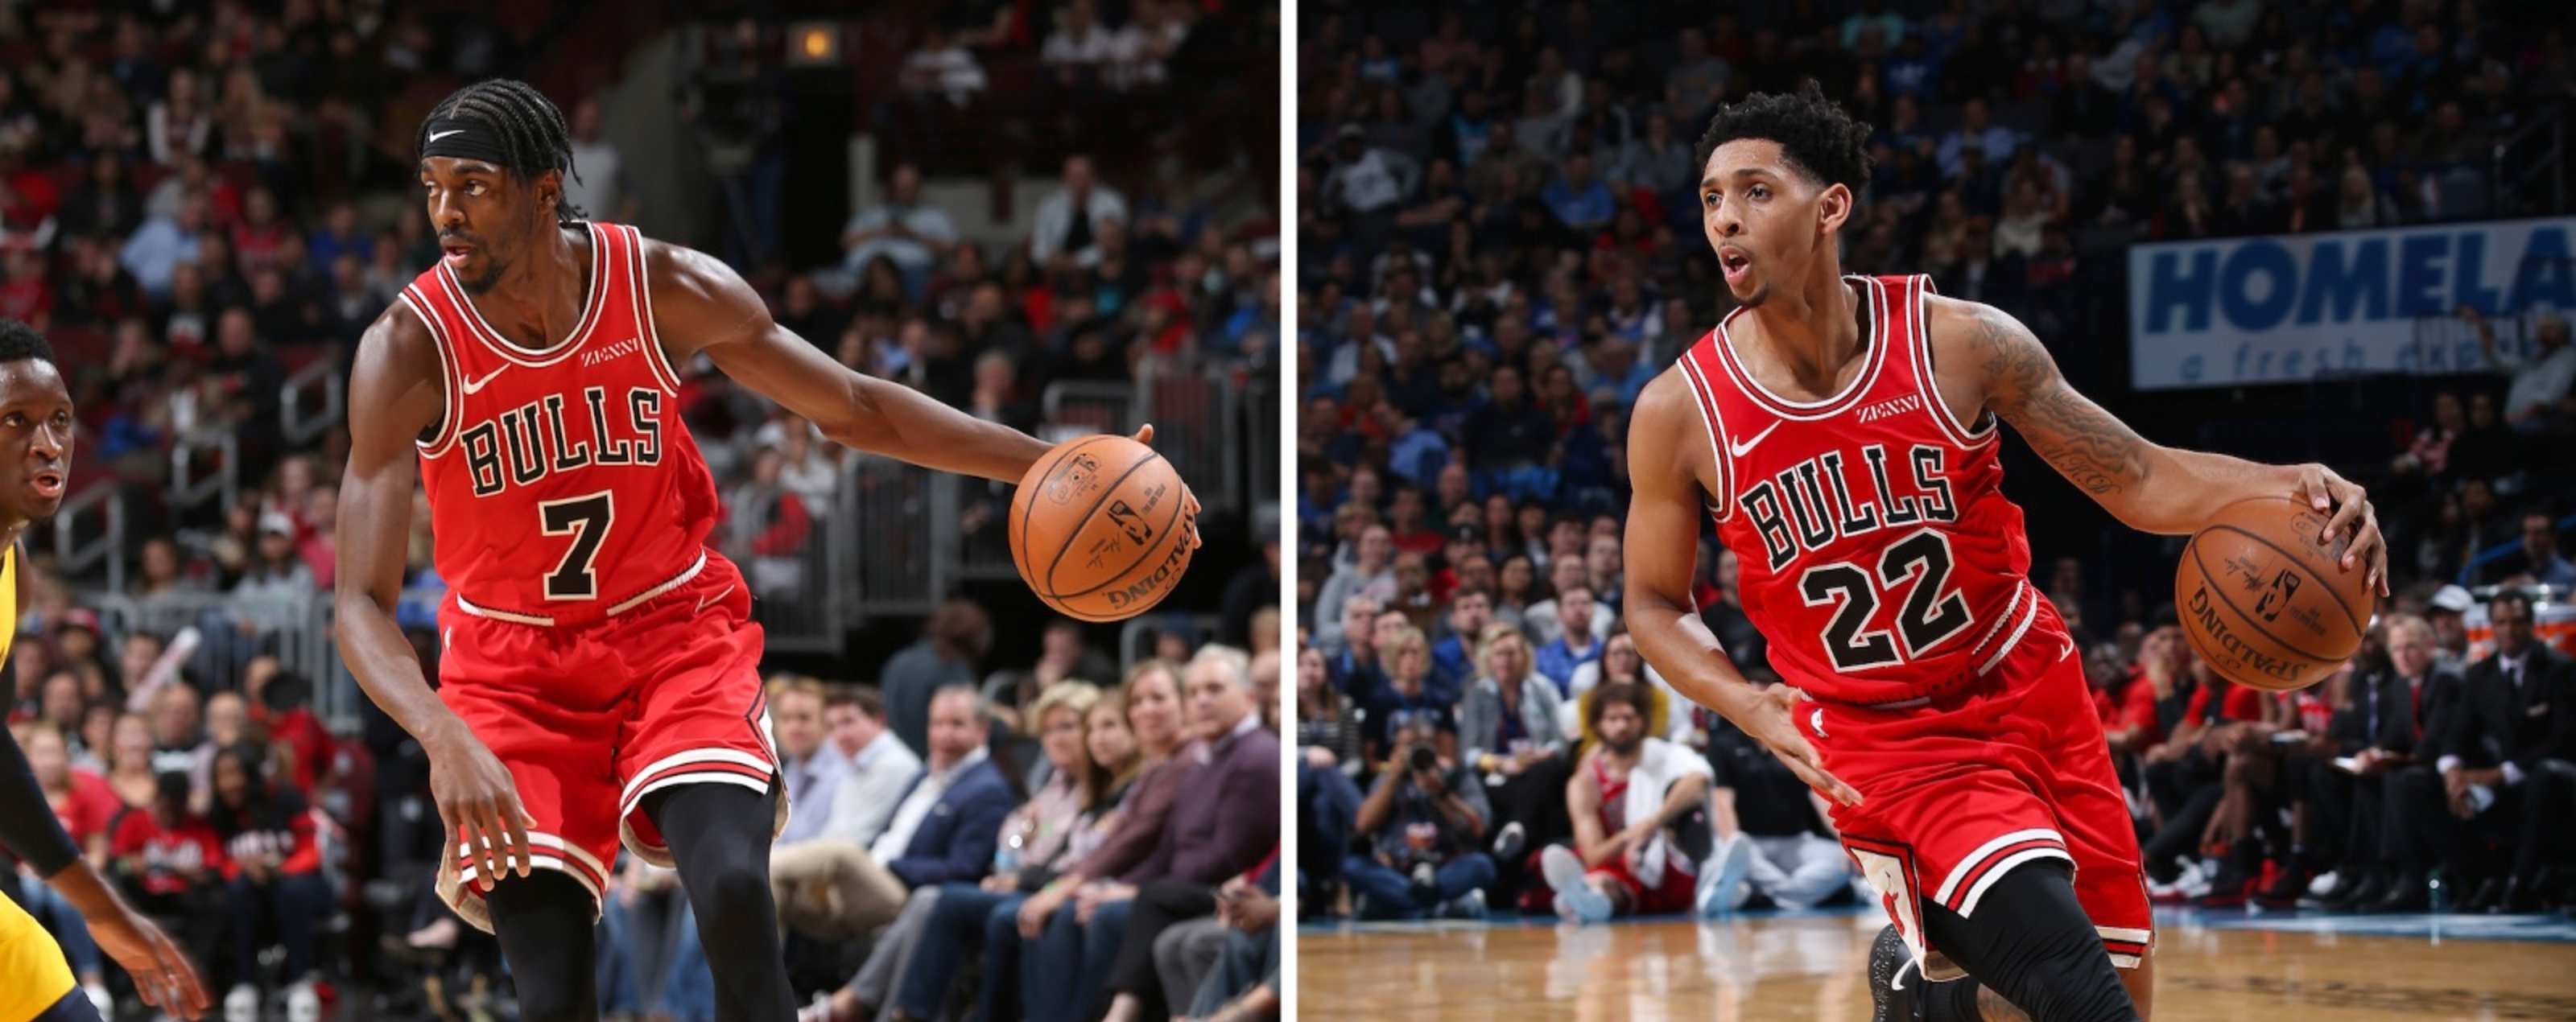 Chicago completes trade with Memphis, sending Justin Holiday to the Grizzlies for MarShon Brooks, Wayne Selden and two second-round picks. The Bulls have also waived Cameron Payne.